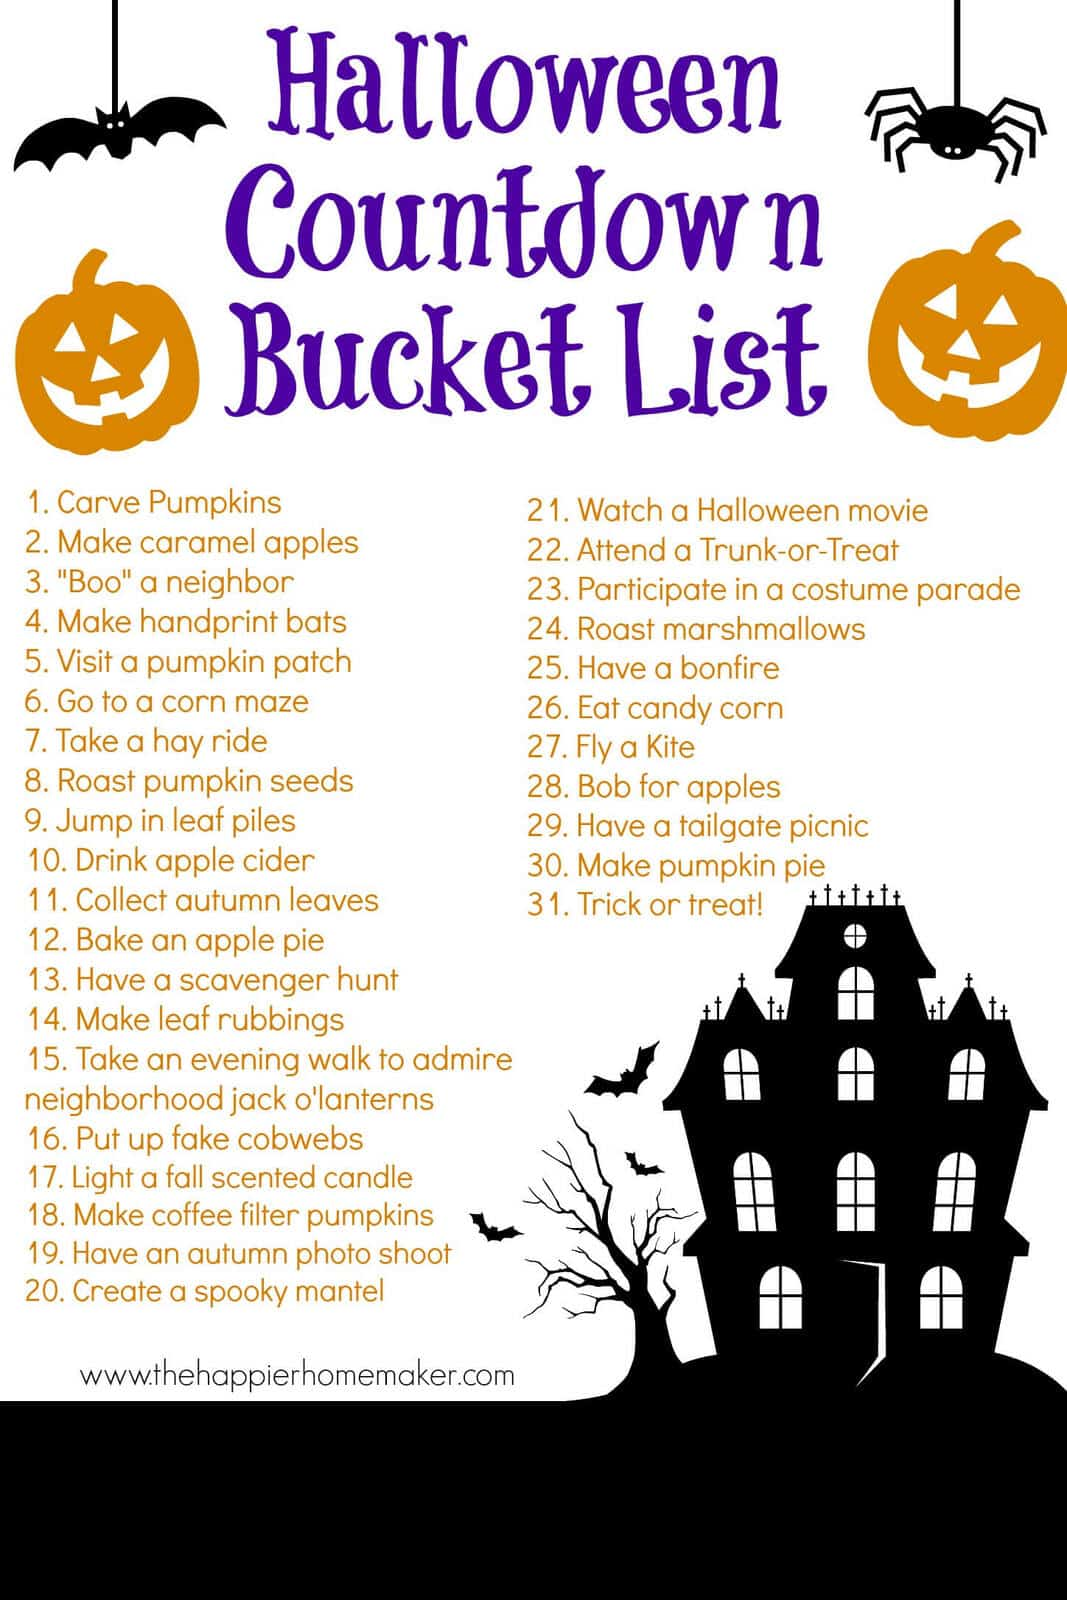 Halloween Countdown Bucket List